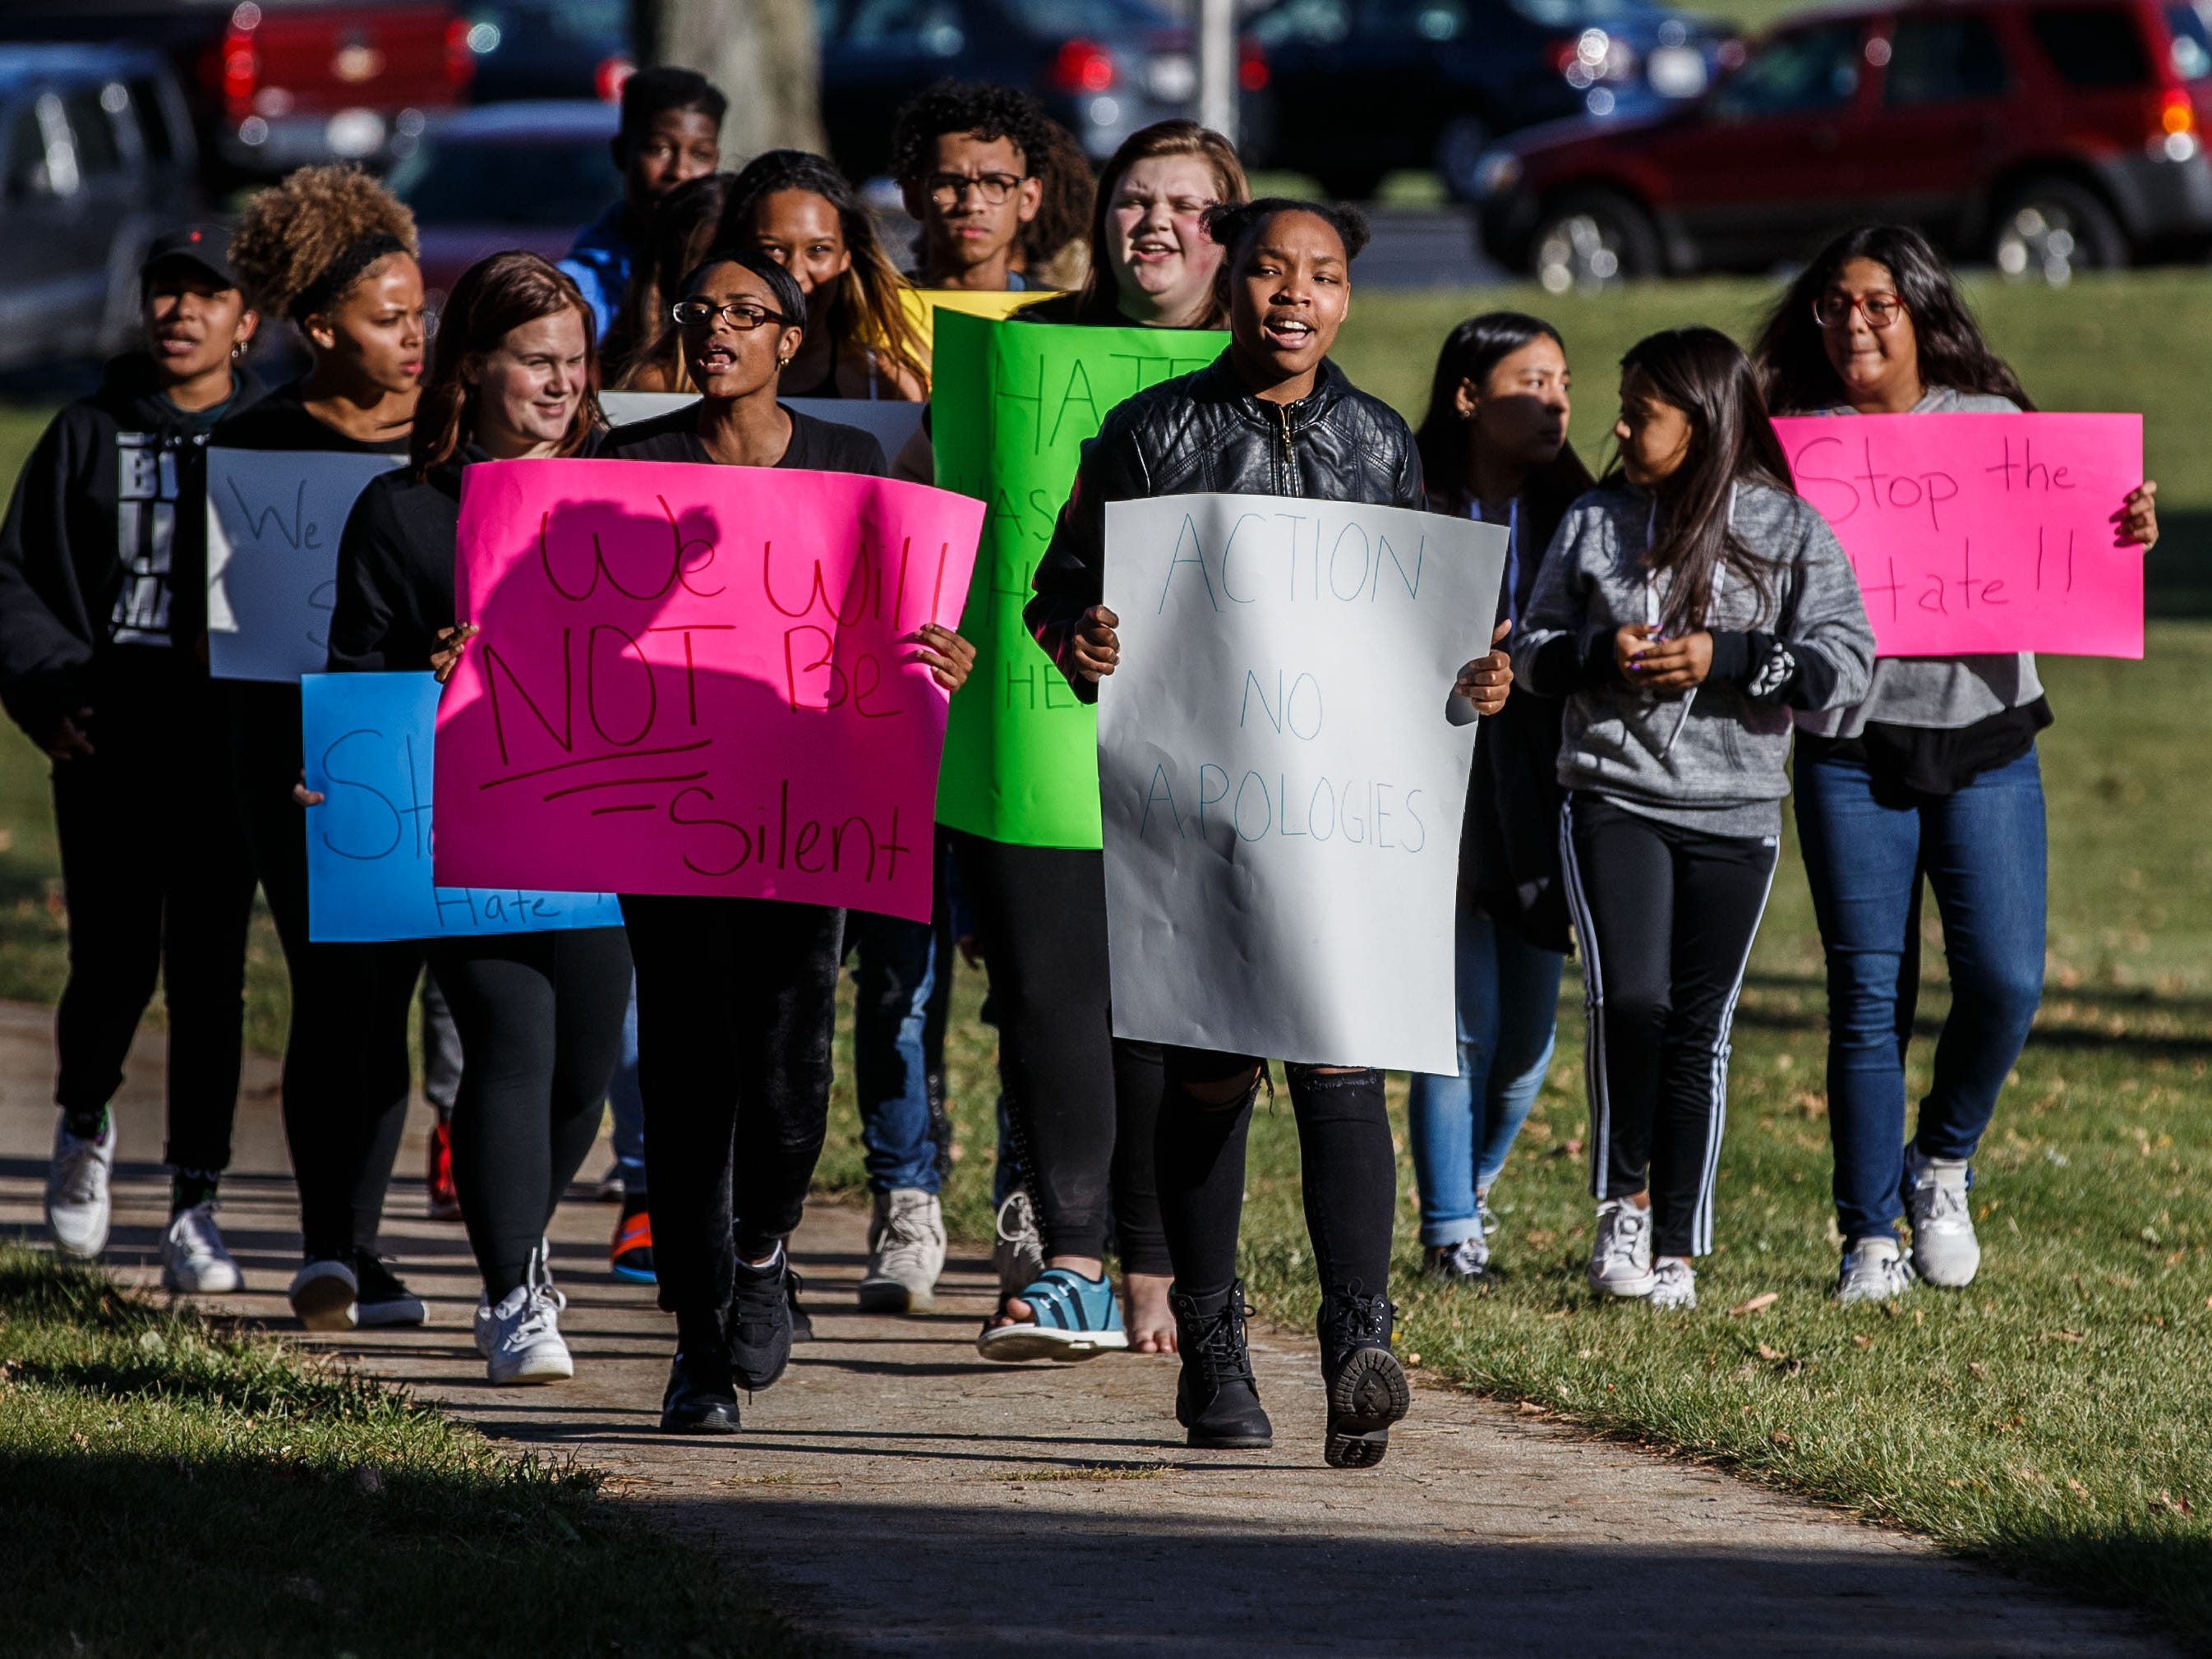 Chanese Knox (center) leads a student protest in front of Greendale High School on Monday, Oct. 22, 2018, in reaction to a racial-slur incident.